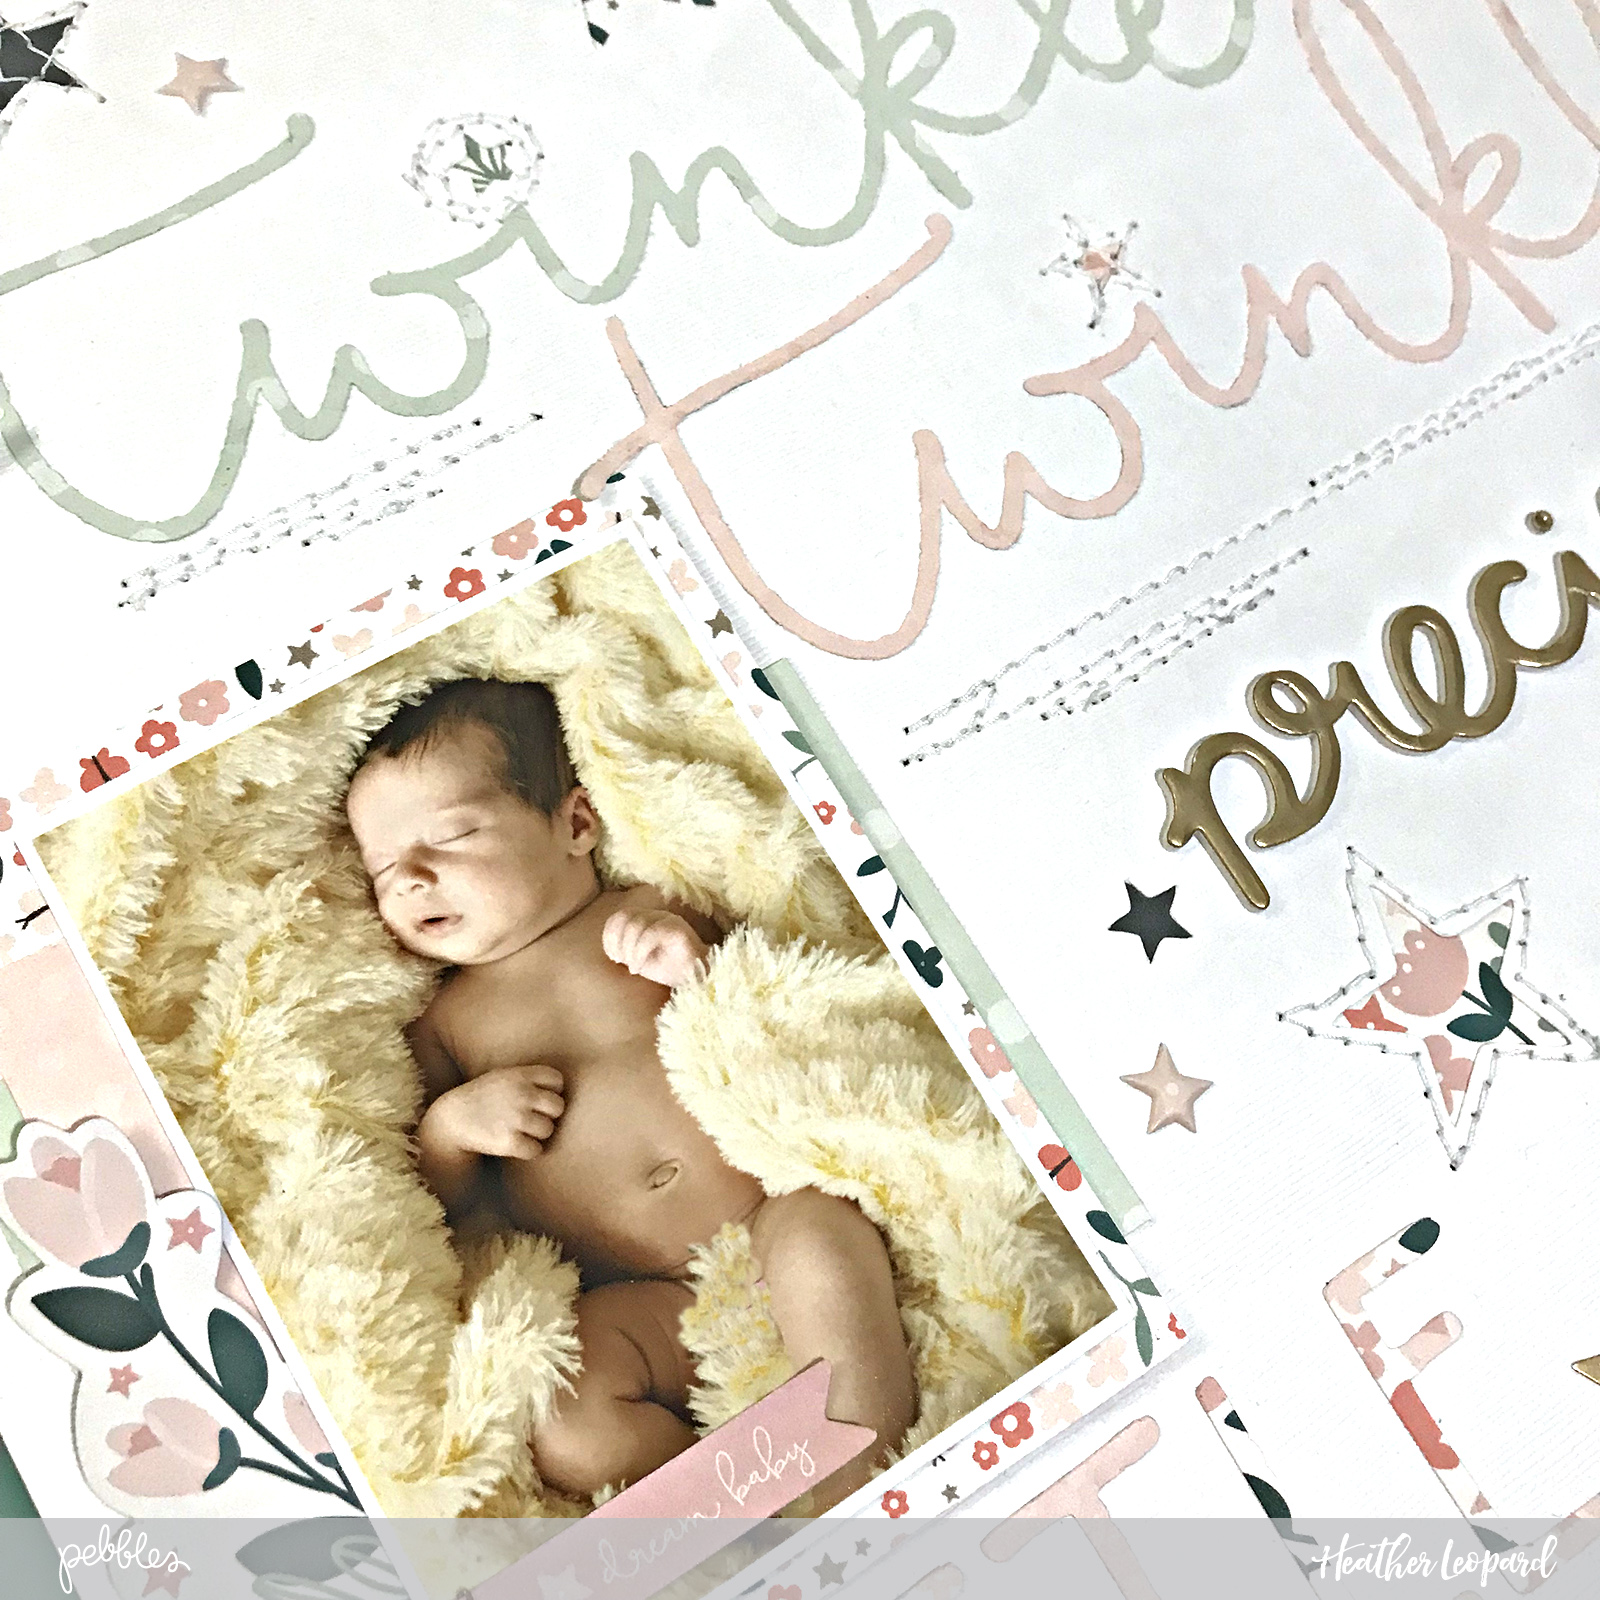 Baby Scrapbooking Layout by @heatherleopard using @pebblesinc #NightNight collection #madewithpebbles #baby #babyscrapbook